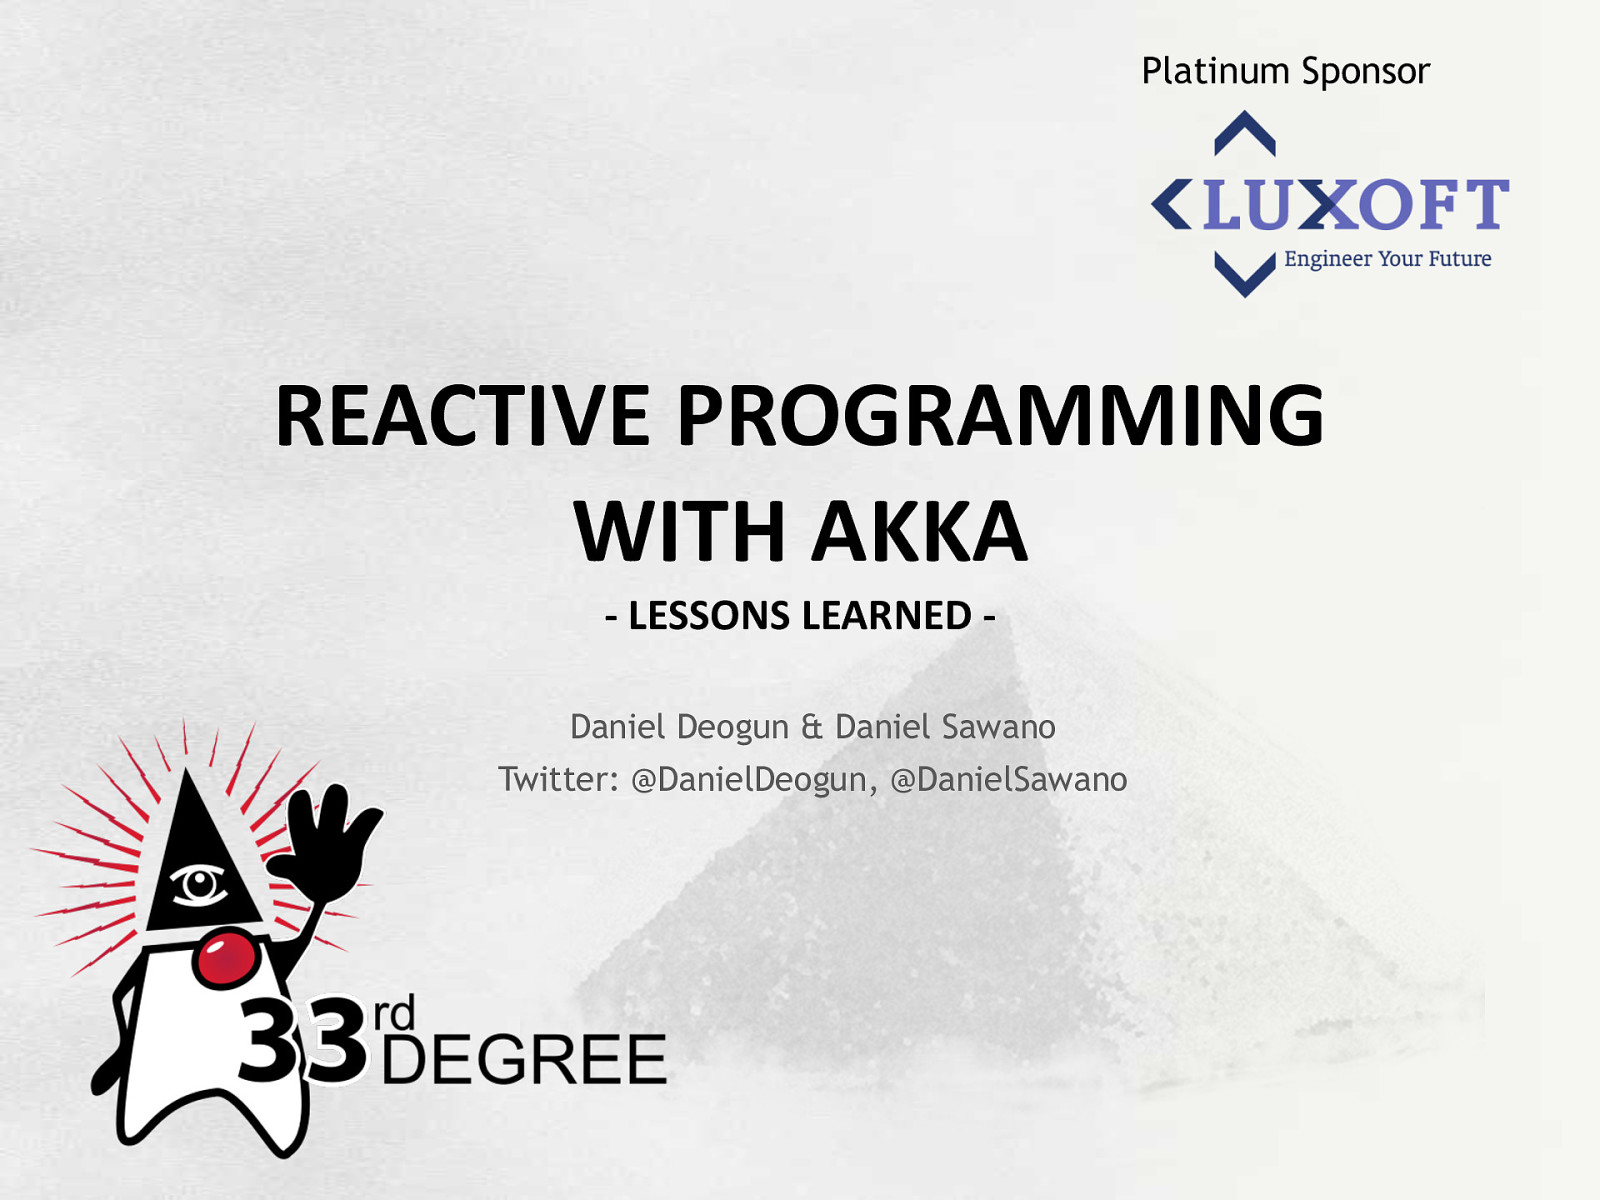 Reactive Programming With Akka - Lessons Learned